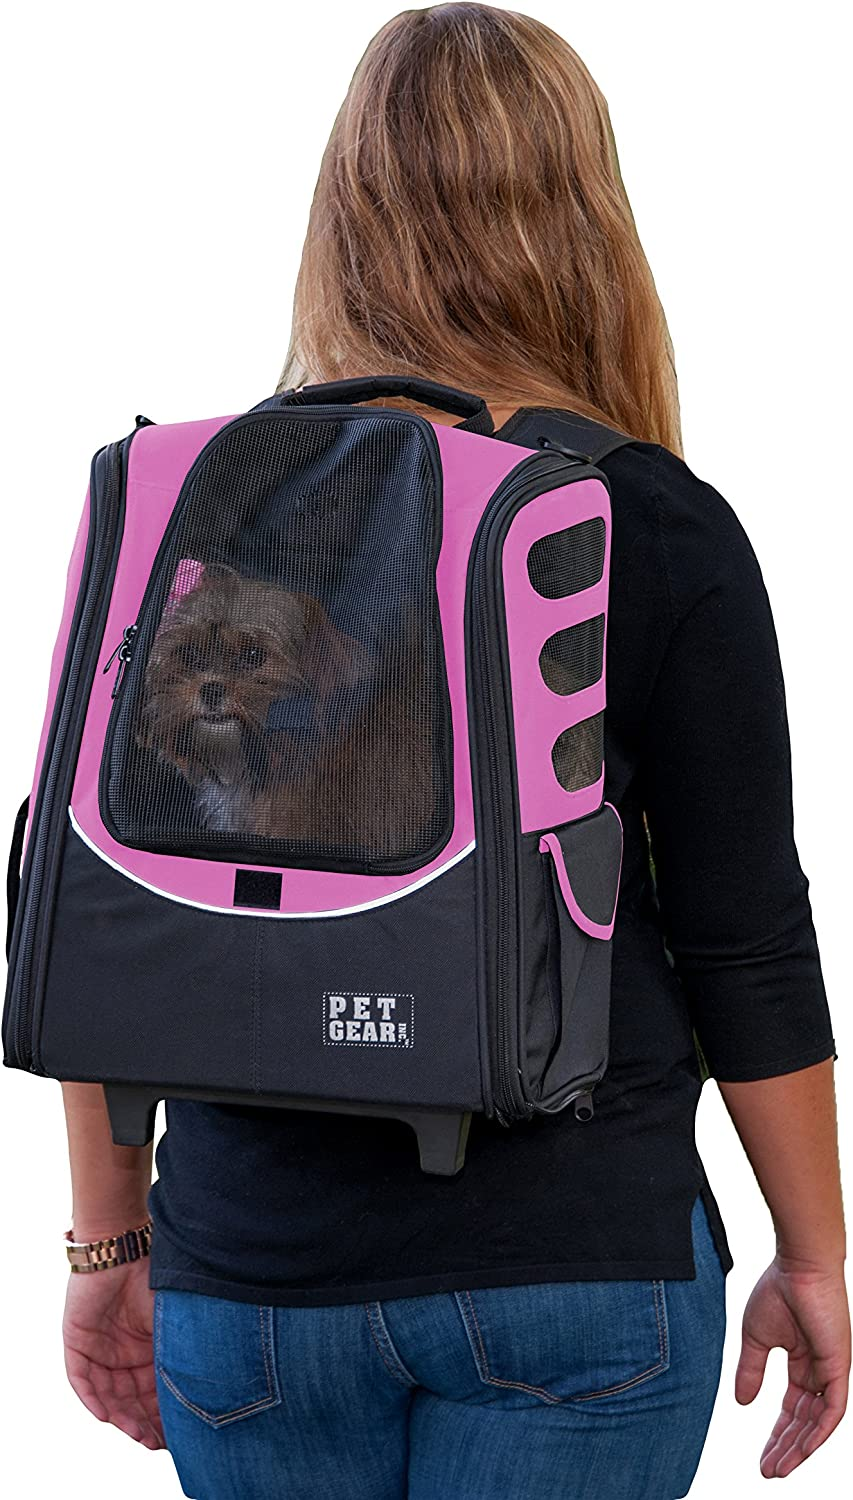 Pet Gear I-GO2 Roller Backpack Travel Cat Same day shipping Carrier Seat Car for Cheap mail order shopping